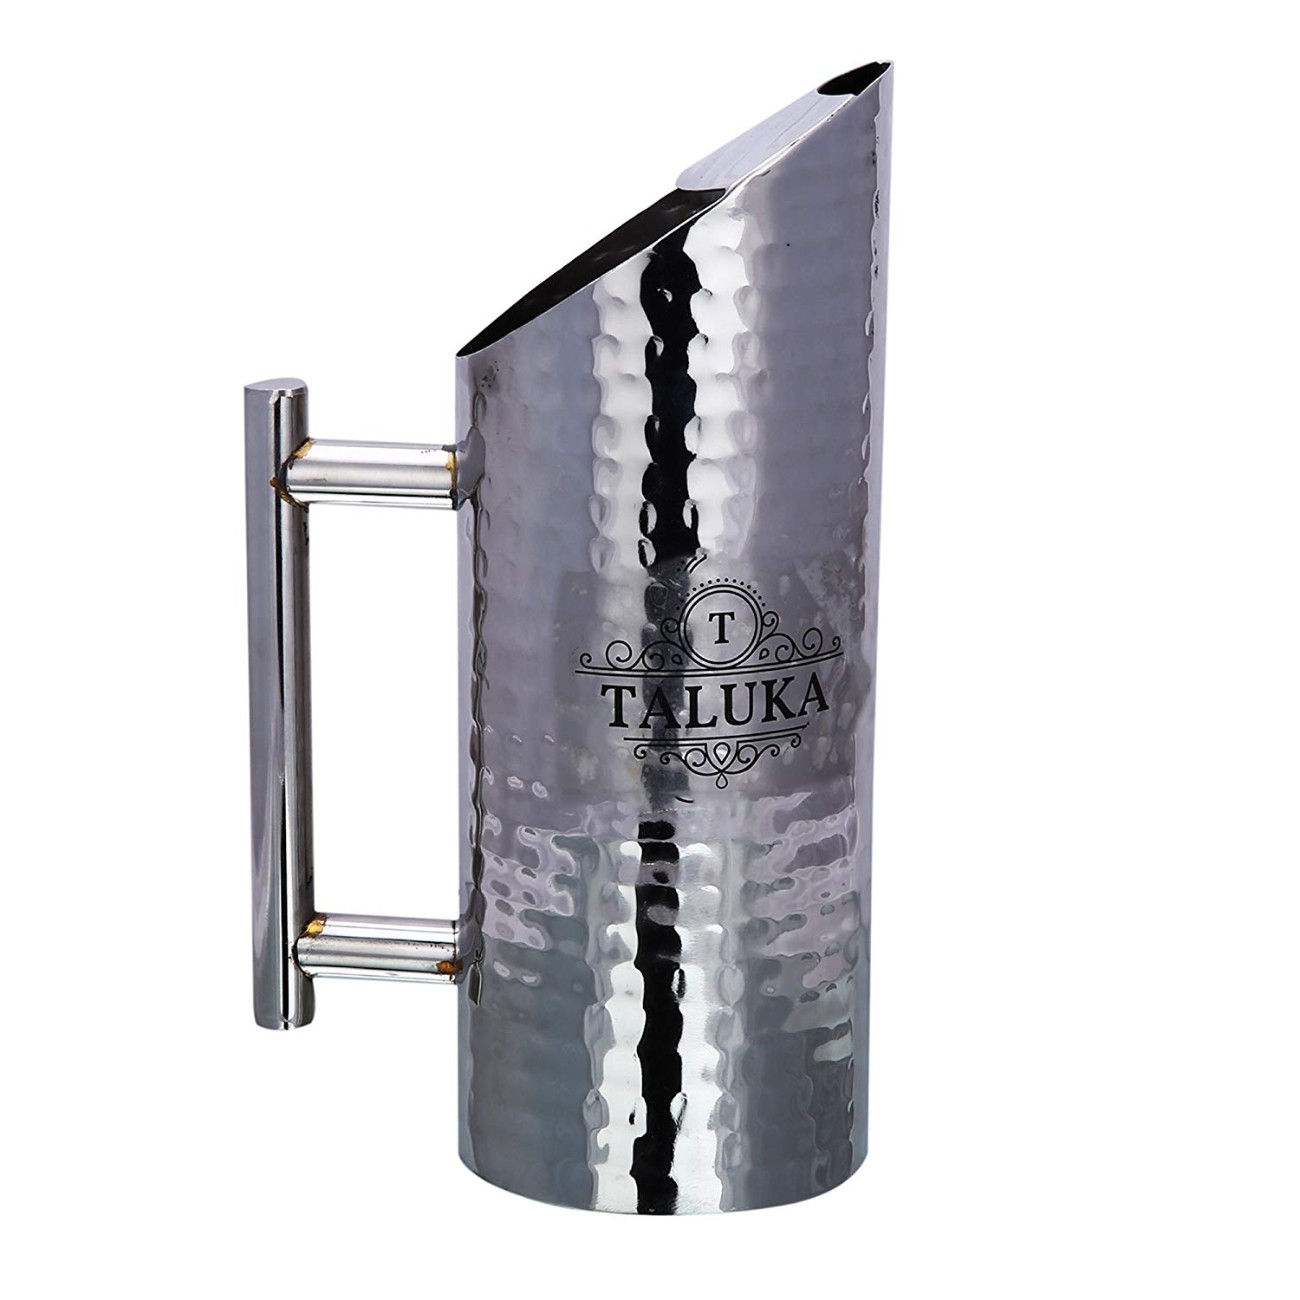 Stainless Steel Hammered Jug Pitcher With Pipe Handle For Drinking Storage 1500 ML